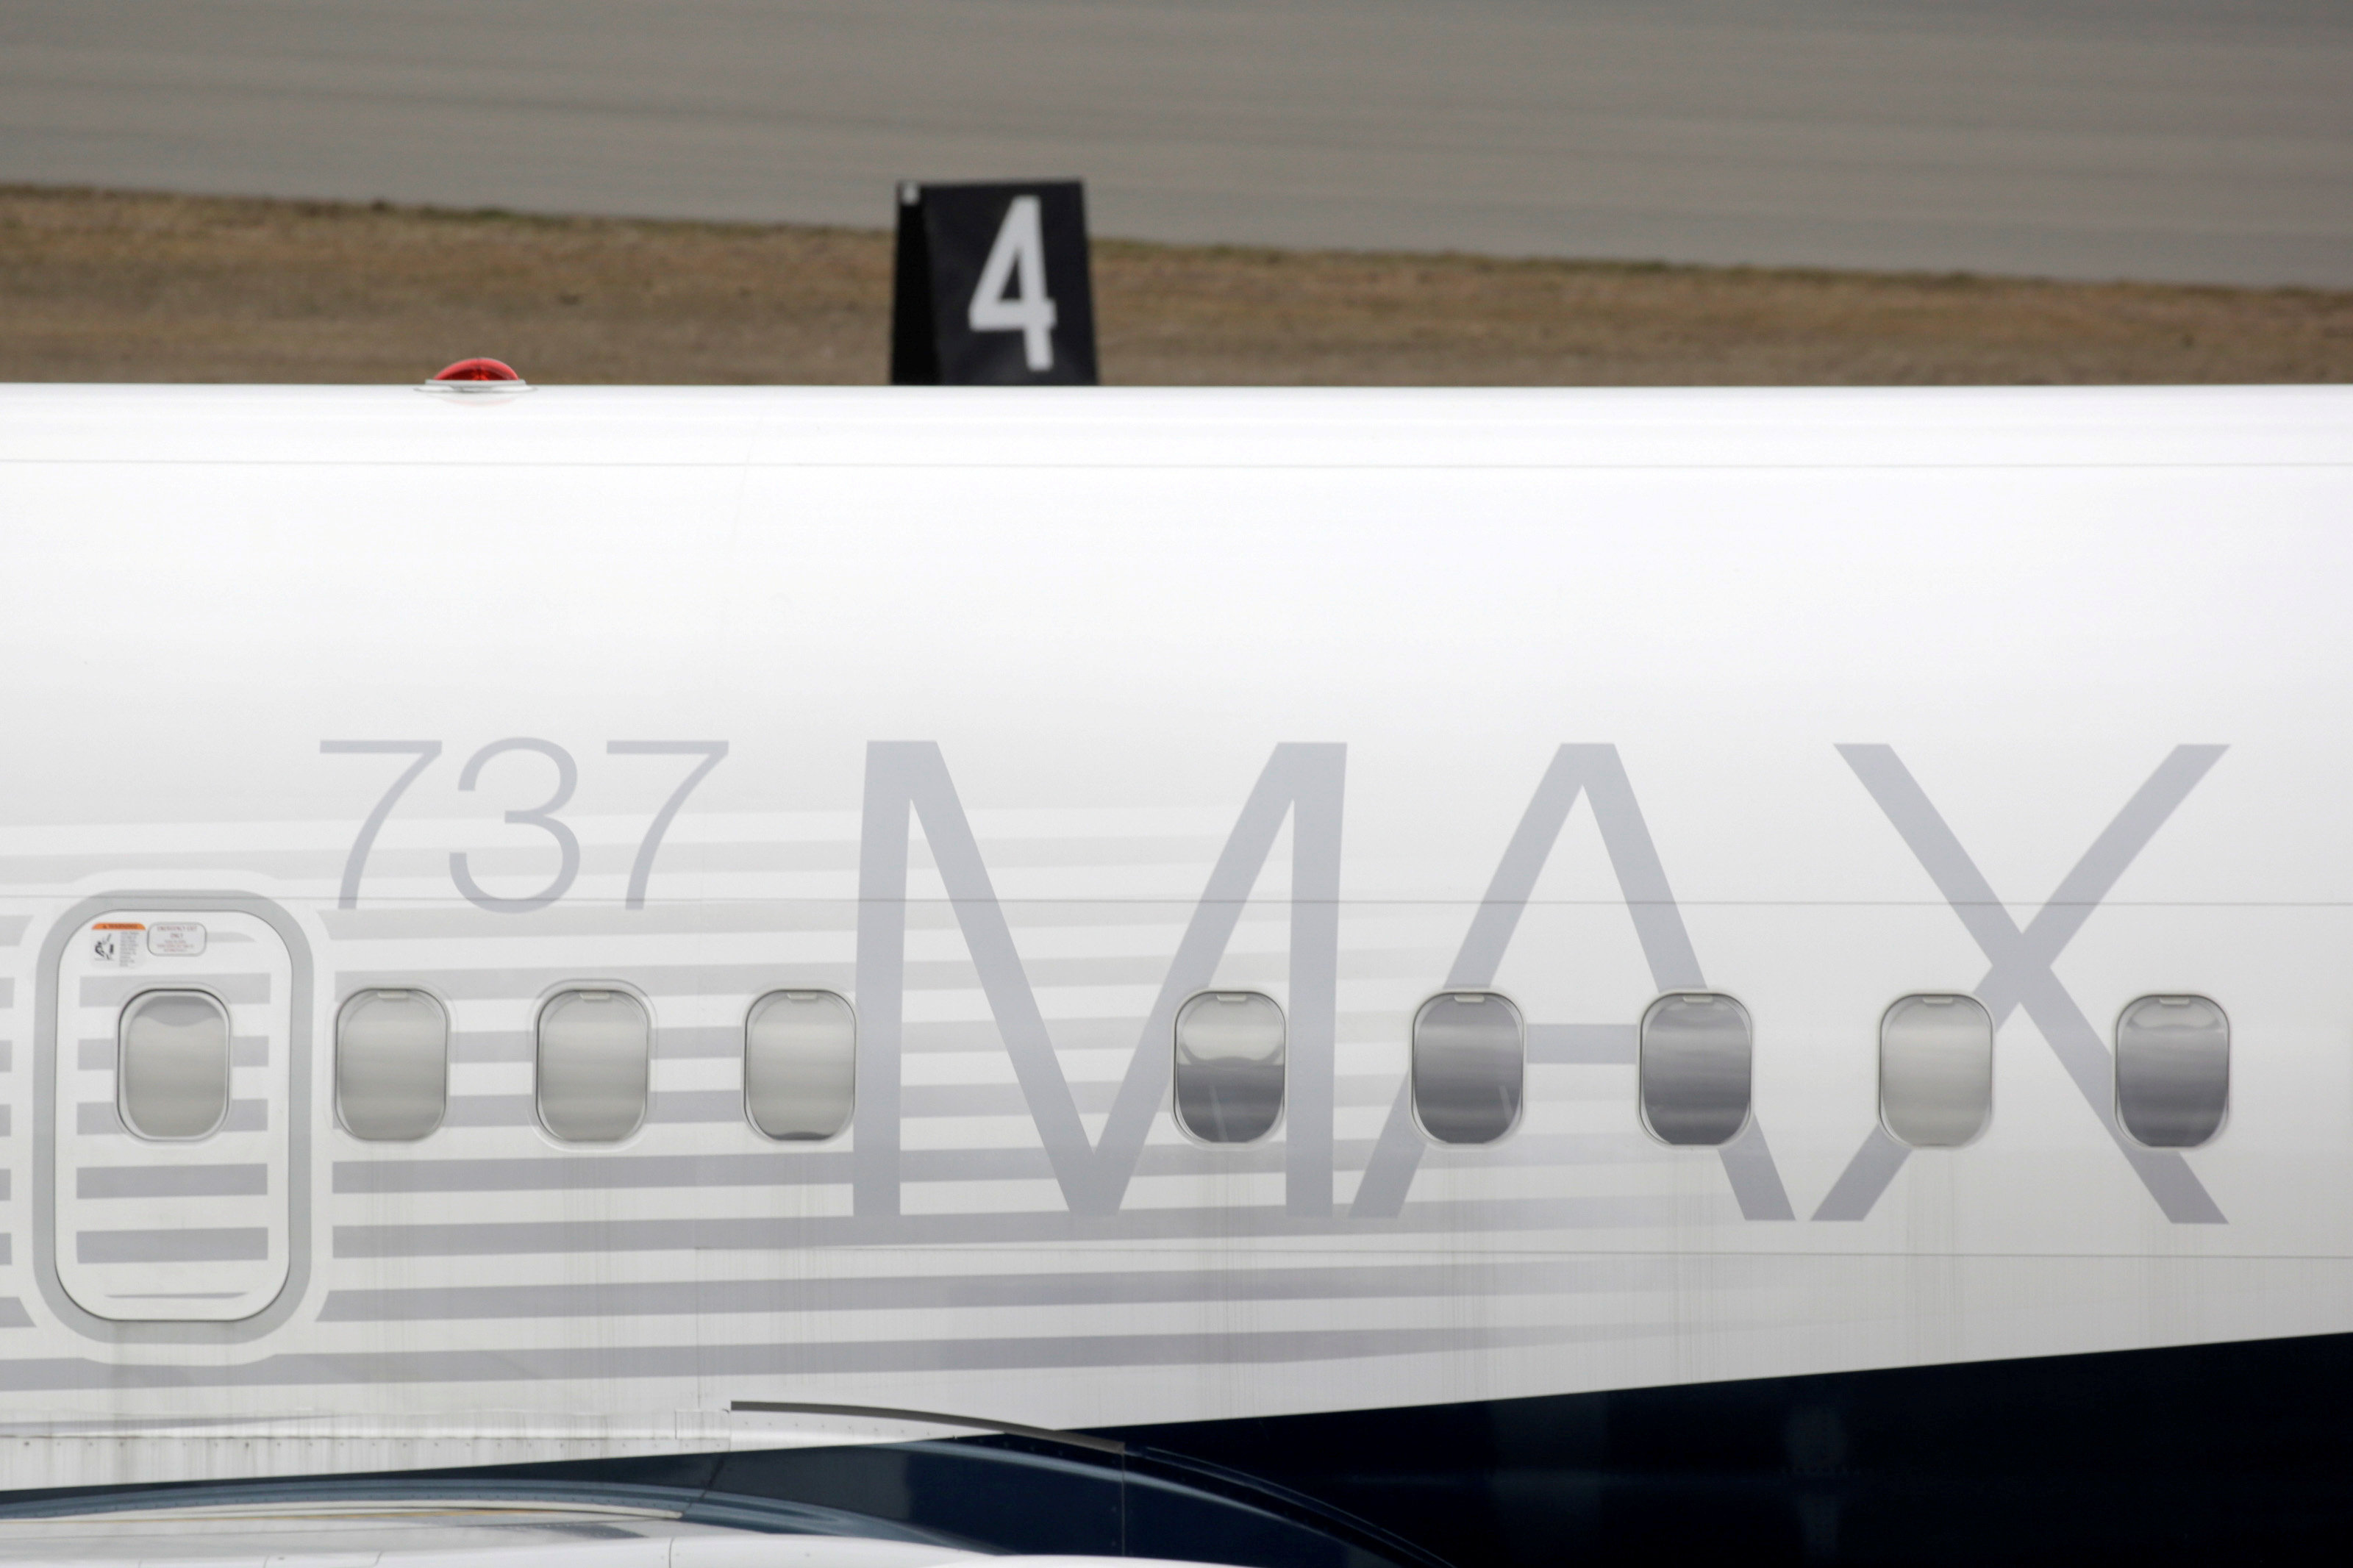 The 737 MAX has been grounded from commercial flight worldwide since March 2019 after two crashes killed 346 people in Ethiopia and Indonesia over a five-month span. ― Reuters pic